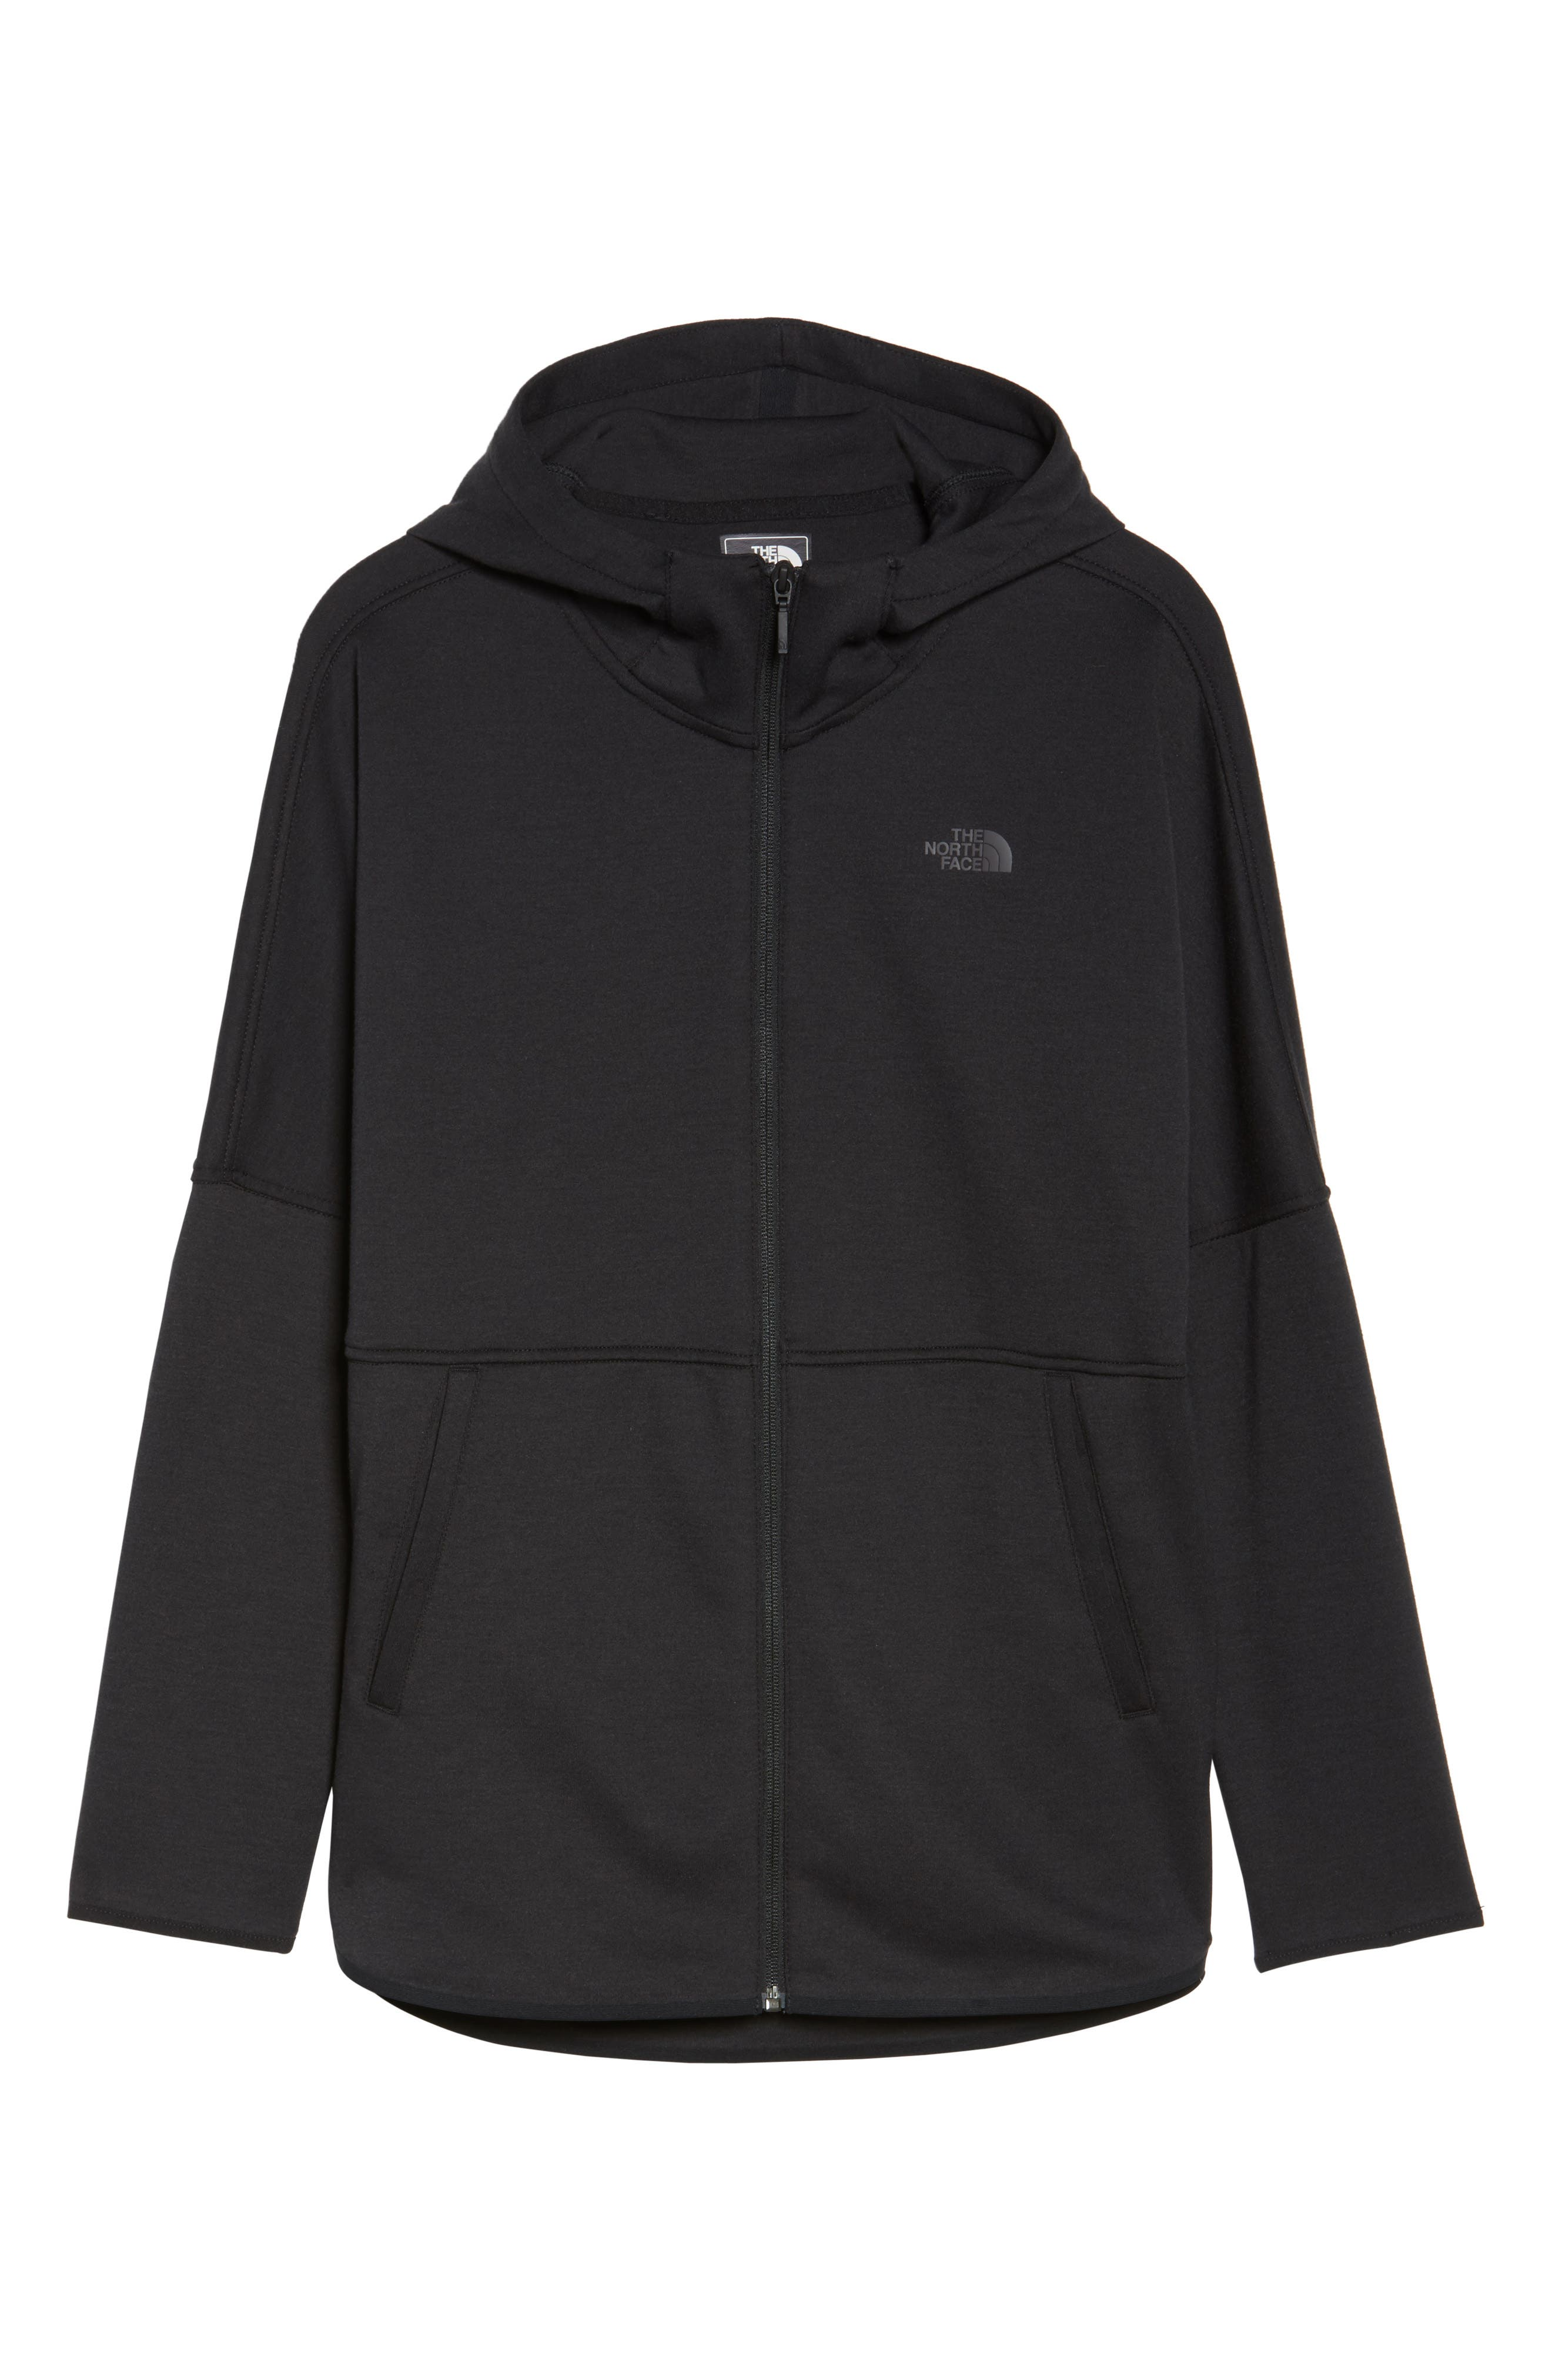 THE NORTH FACE,                             Slacker Hooded Jacket,                             Alternate thumbnail 6, color,                             001